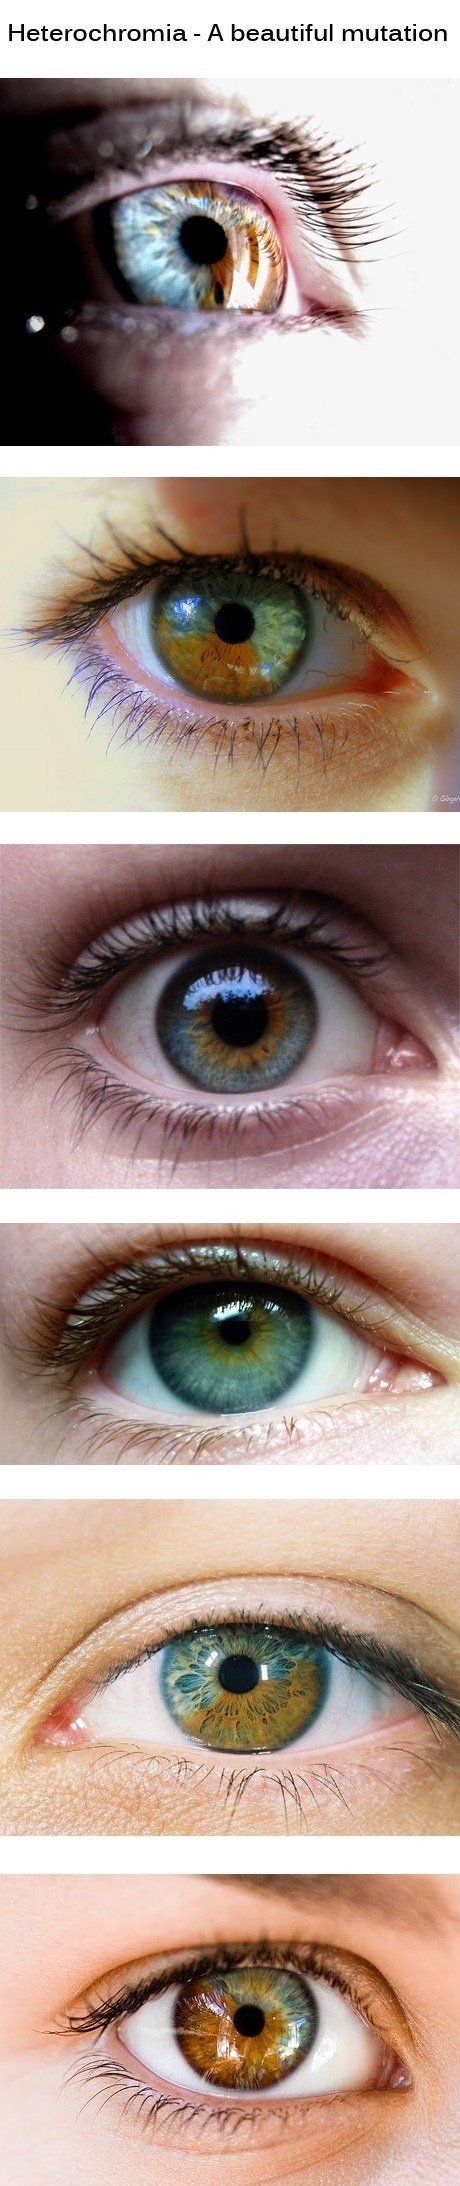 Beautiful Heterochromia...didn't realize this was a thing